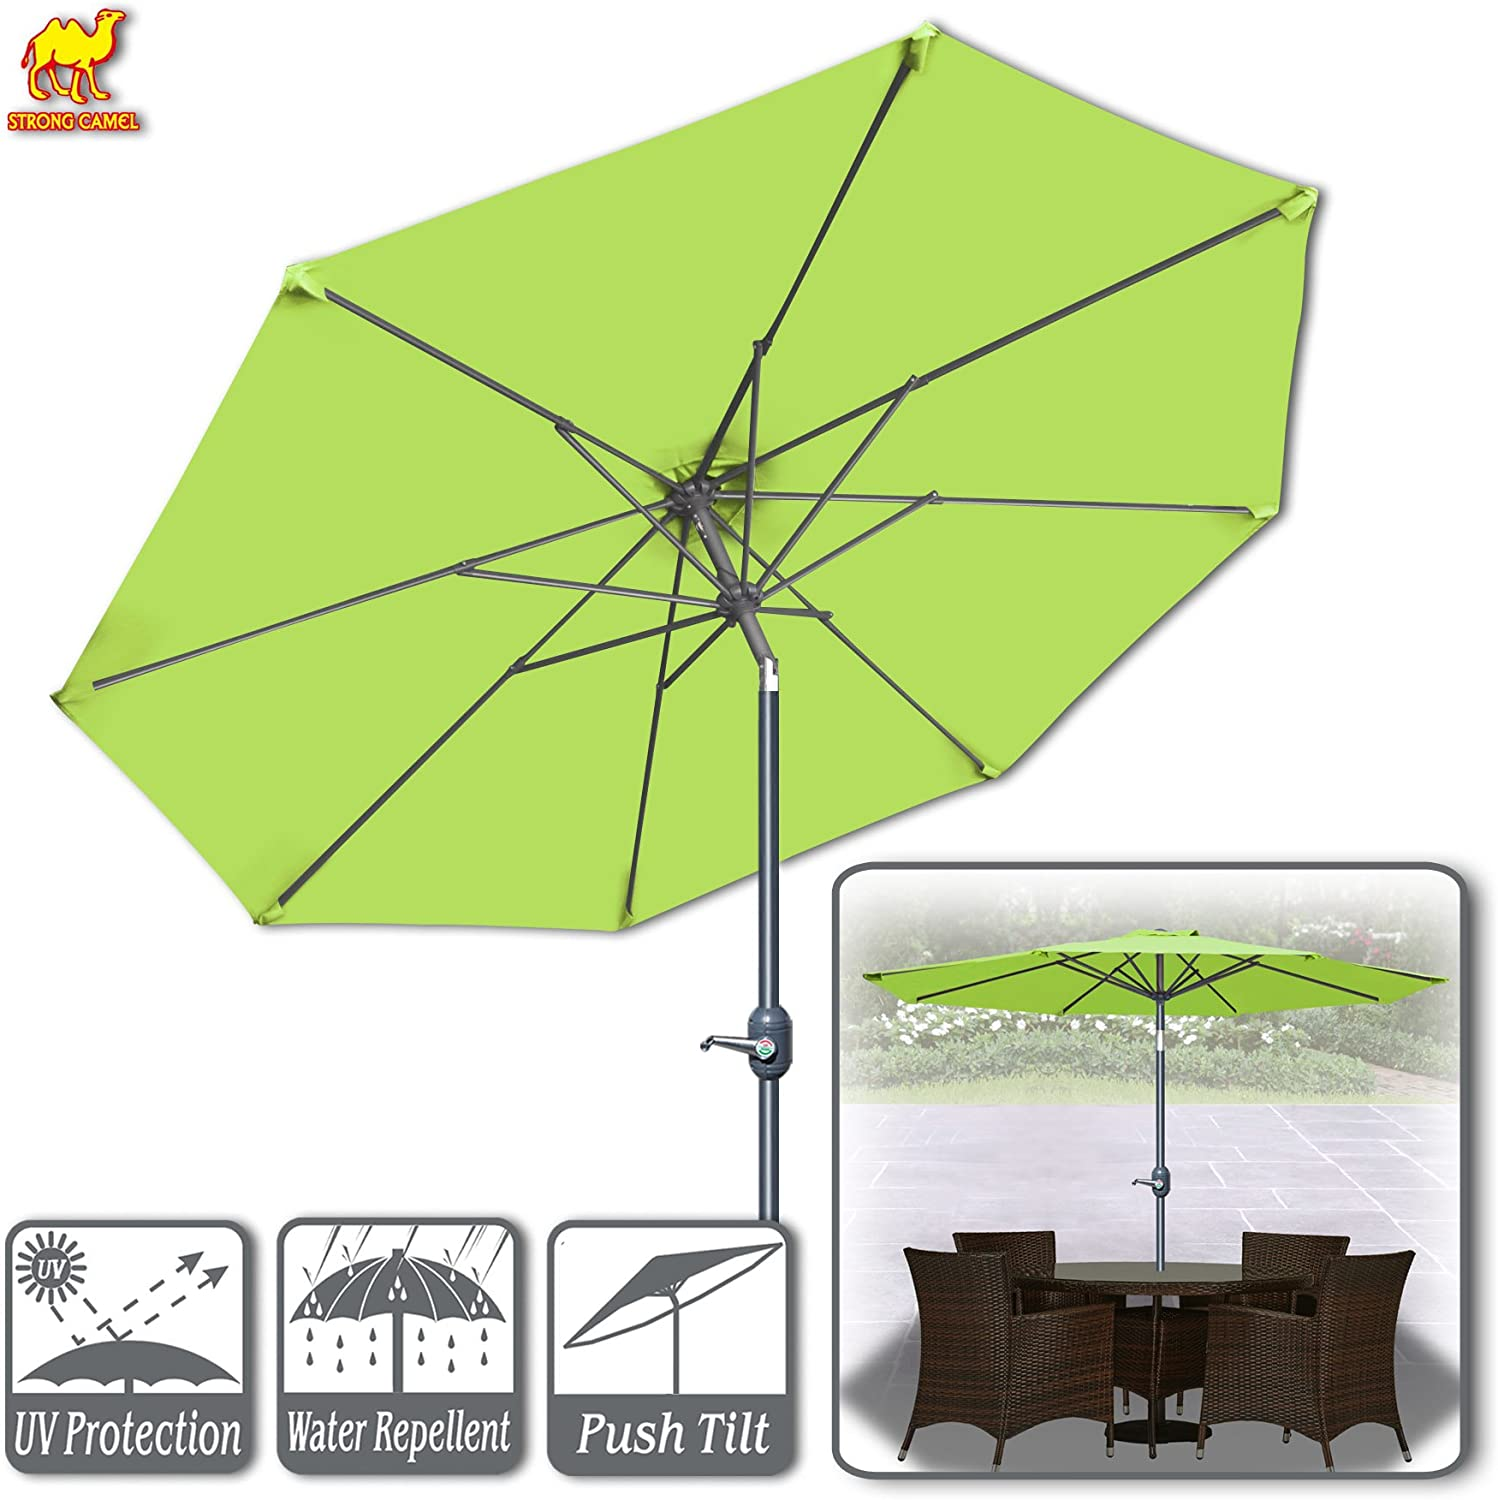 Strong Camel 9ft Patio Umbrella with Tilt and Crank 8 Ribs Outdoor Garden Market Umbrella Sunshade Lemon Green